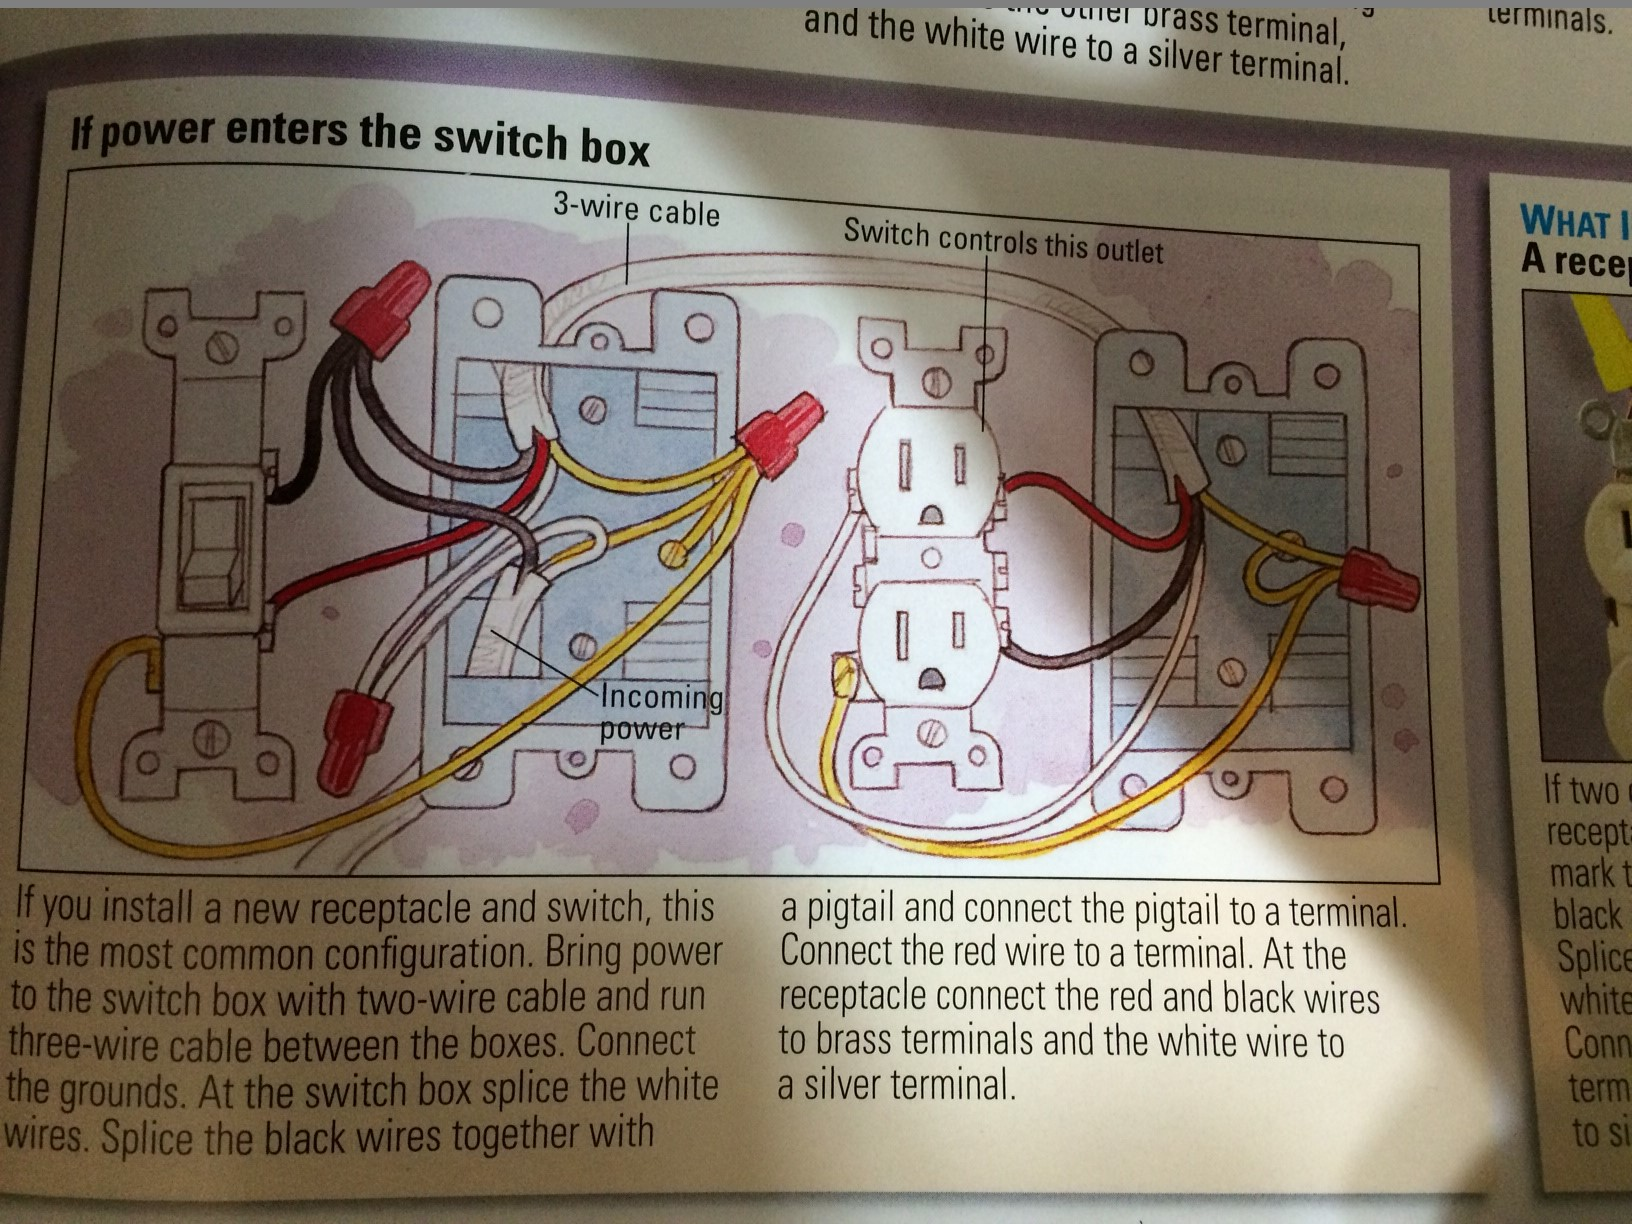 hight resolution of electrical how should i wire 2 switches that control 1 light and 1 receptacle wiring diagram power switch box